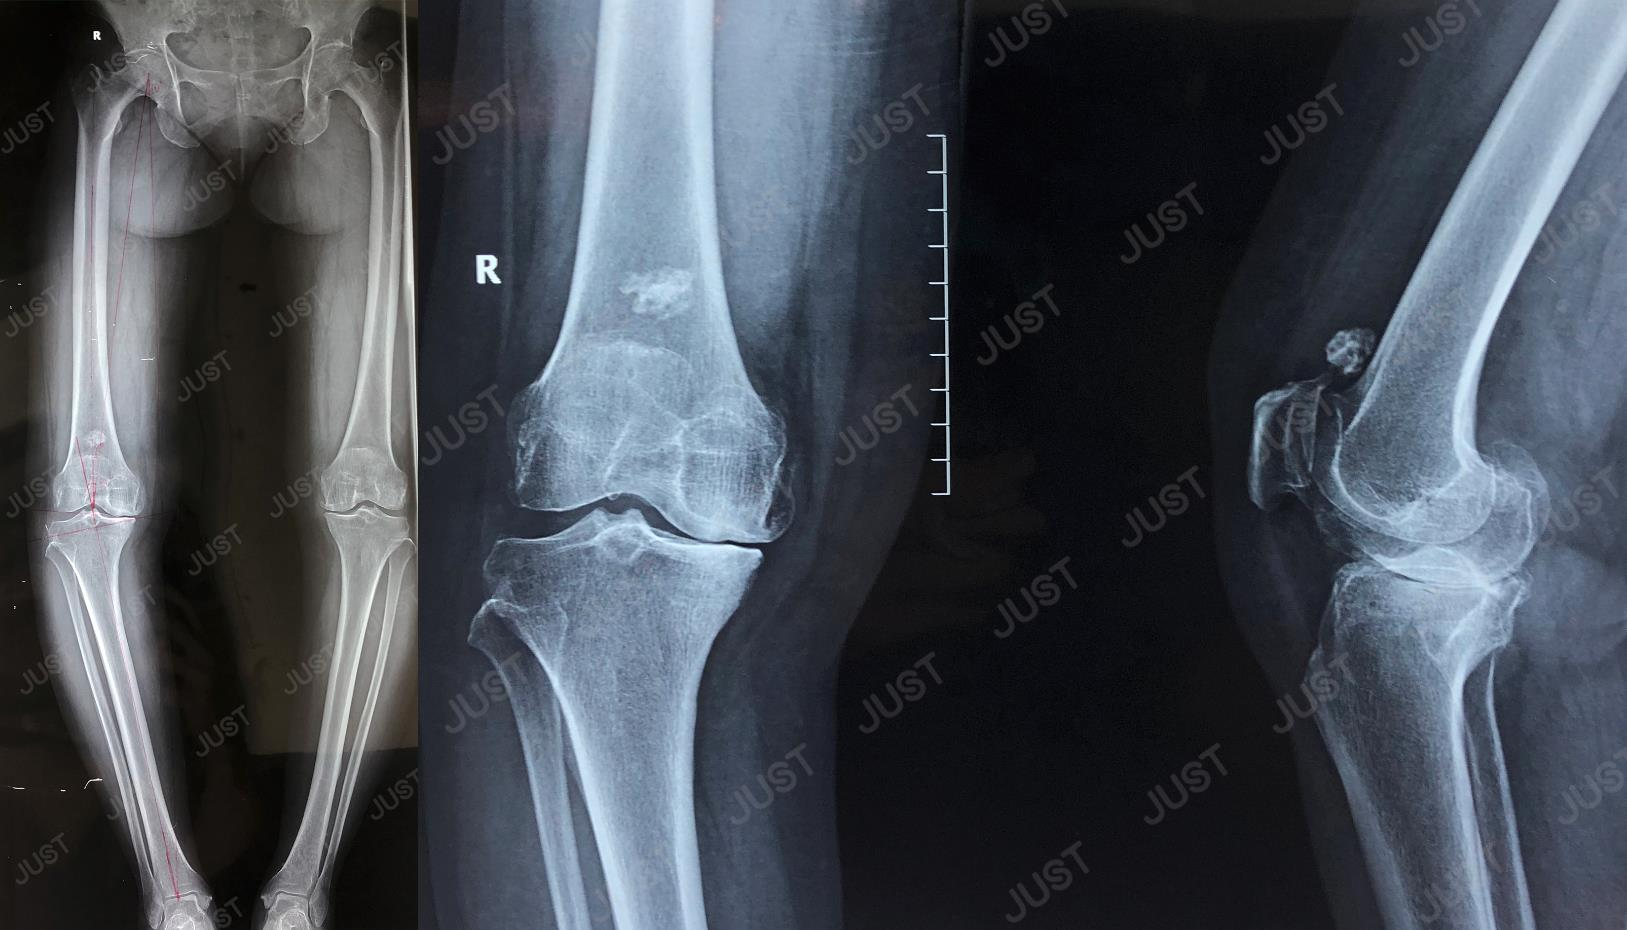 Case of SKII CR High Flexion Total Knee System